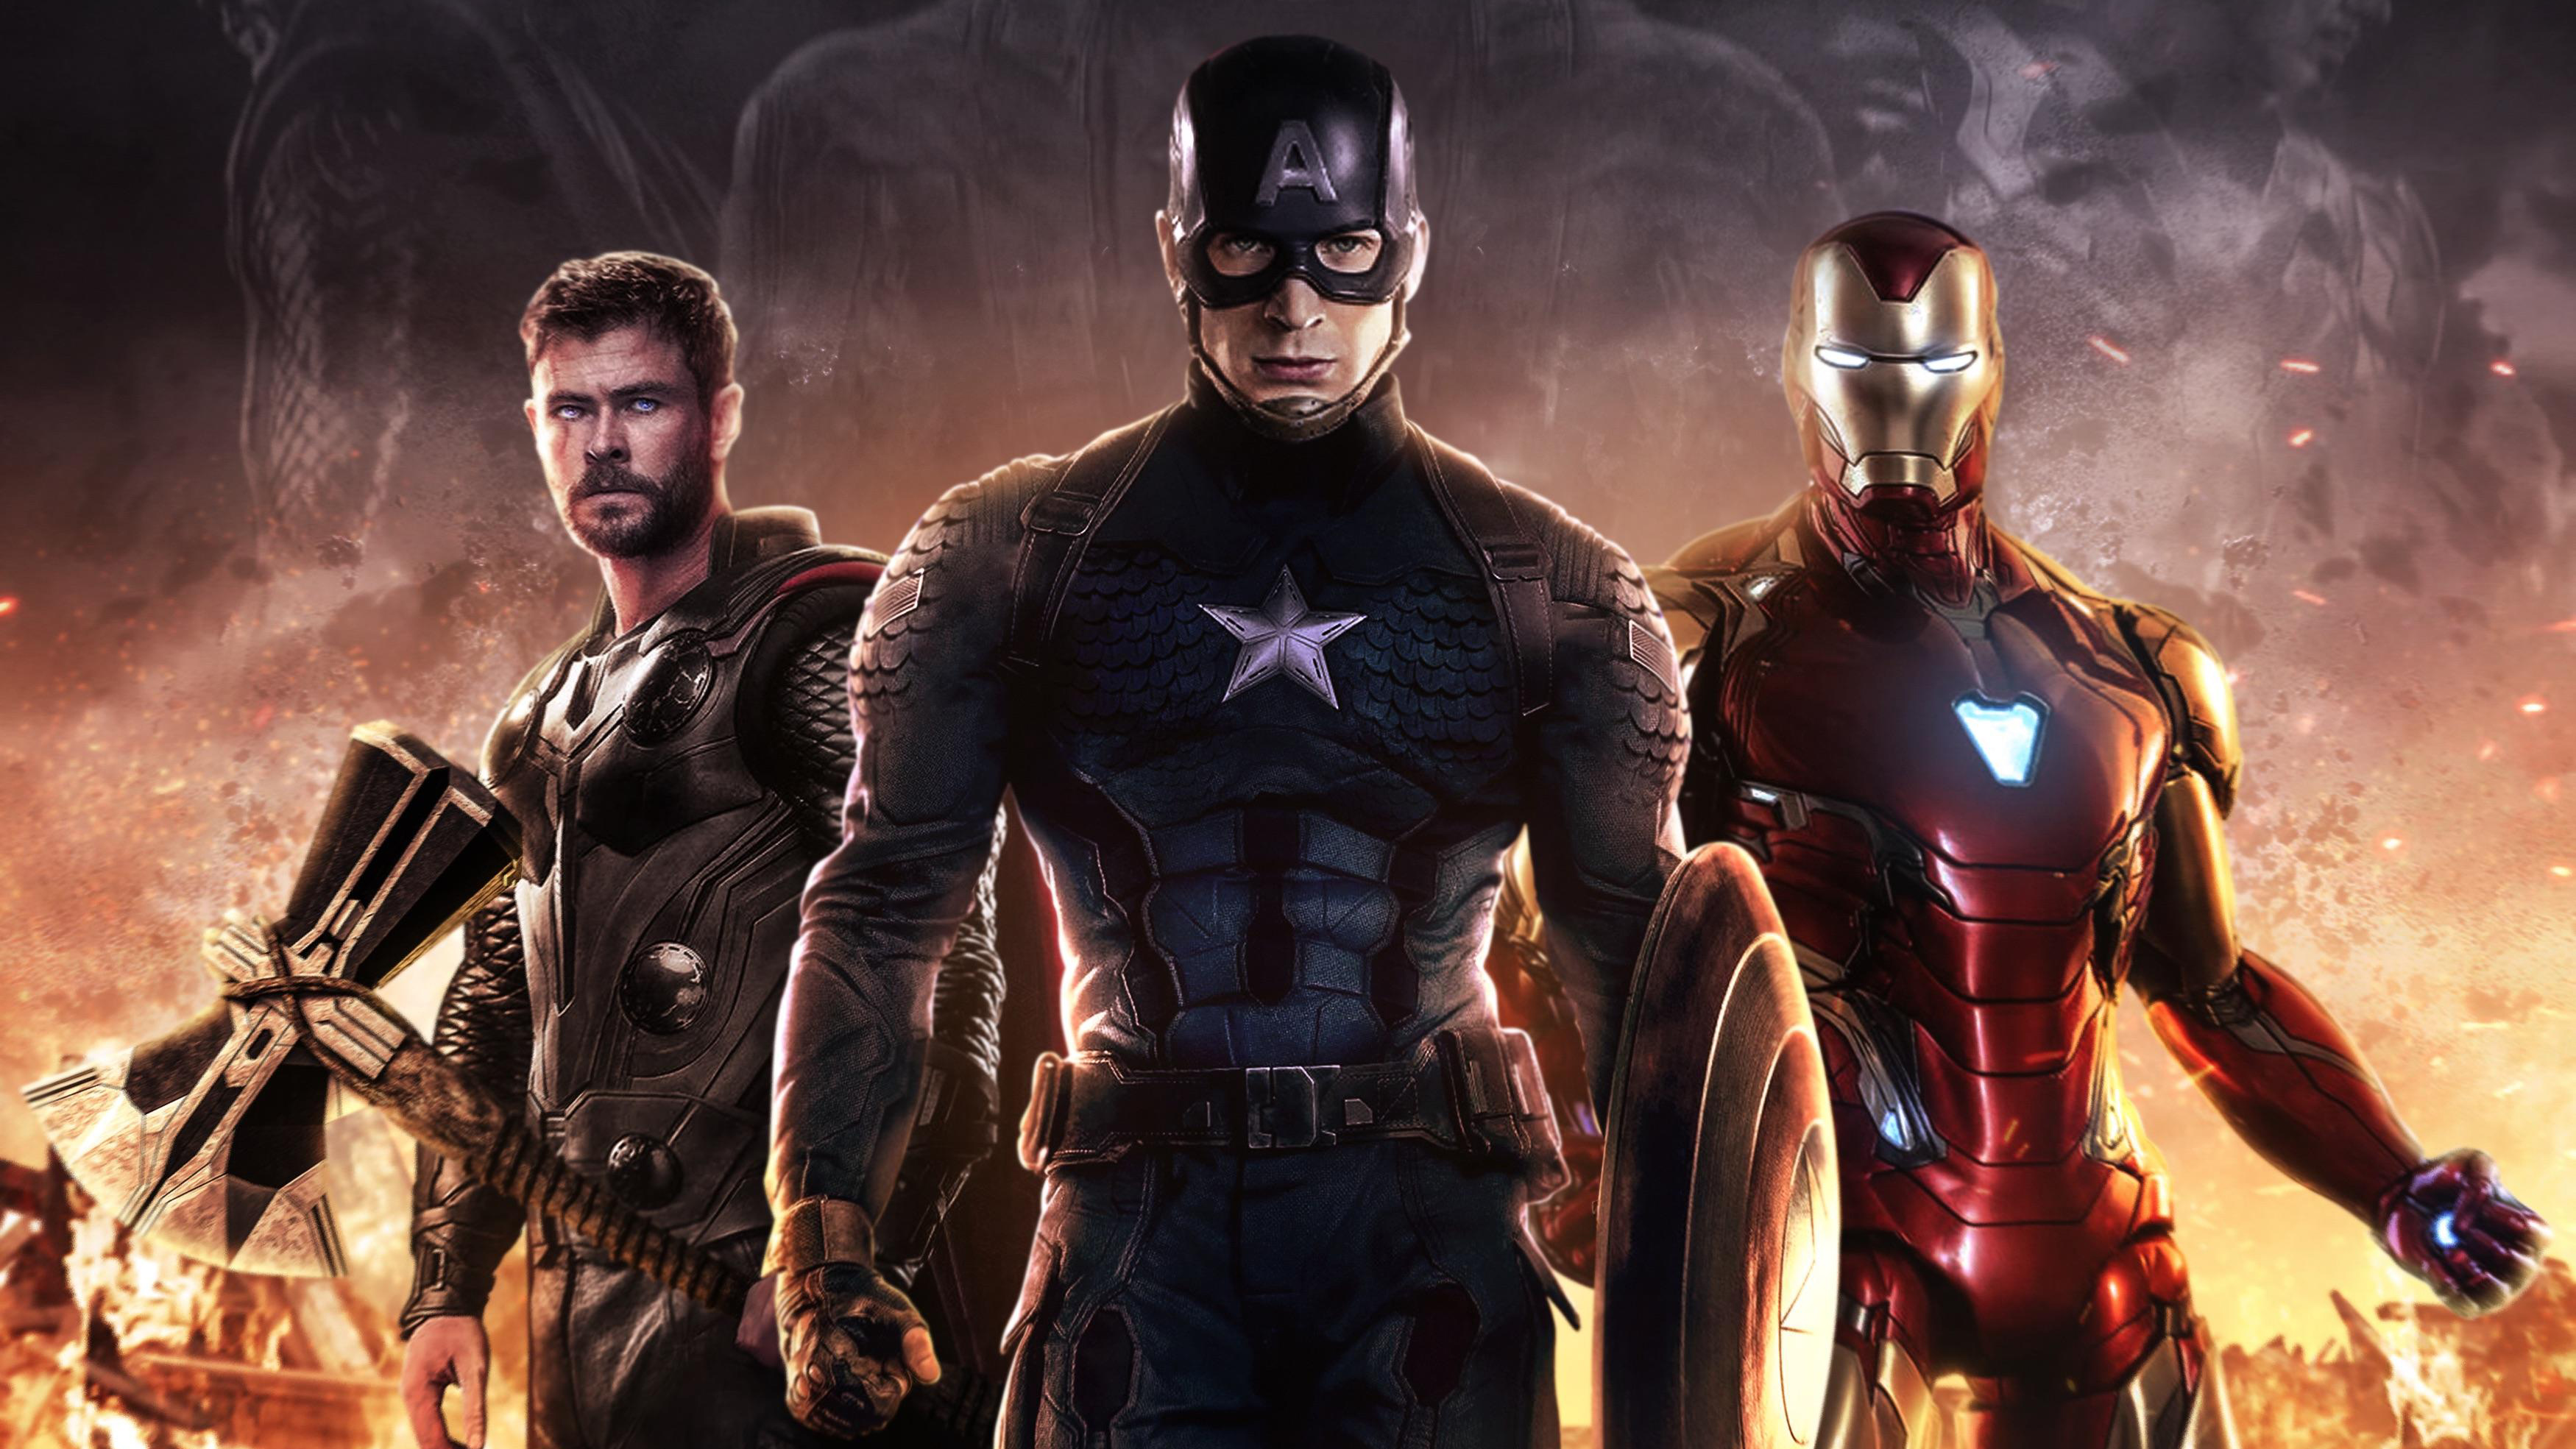 1360x768 Avengers Endgame 4k 2019 Laptop Hd Hd 4k Wallpapers Images Backgrounds Photos And Pictures